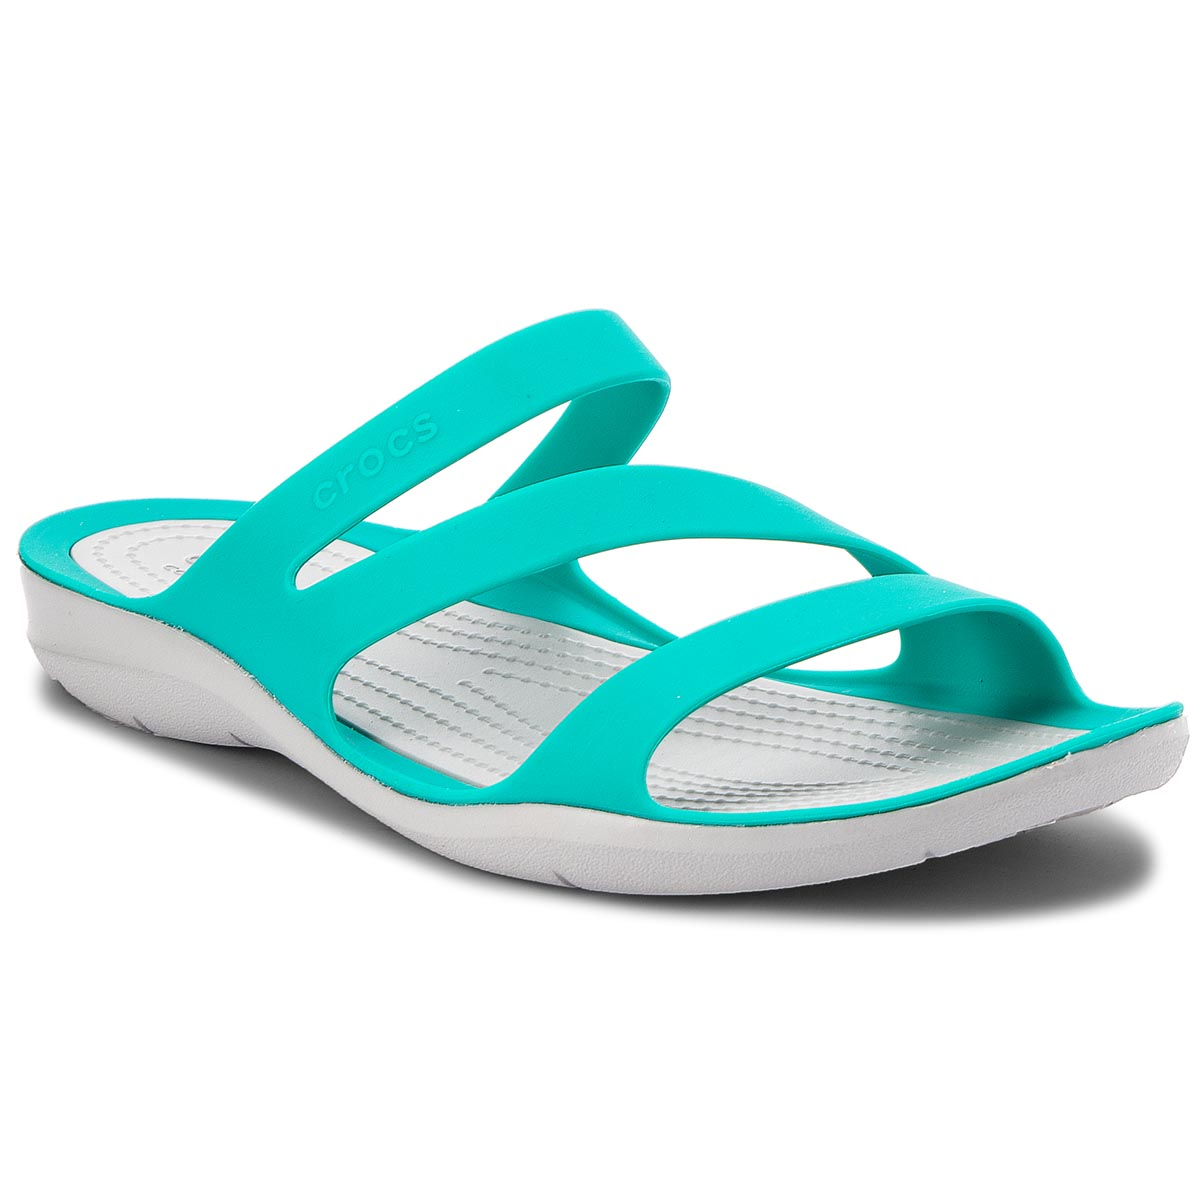 Klapki CROCS - Swiftwater Sandal W 203998 Tropical Teal/Light Grey